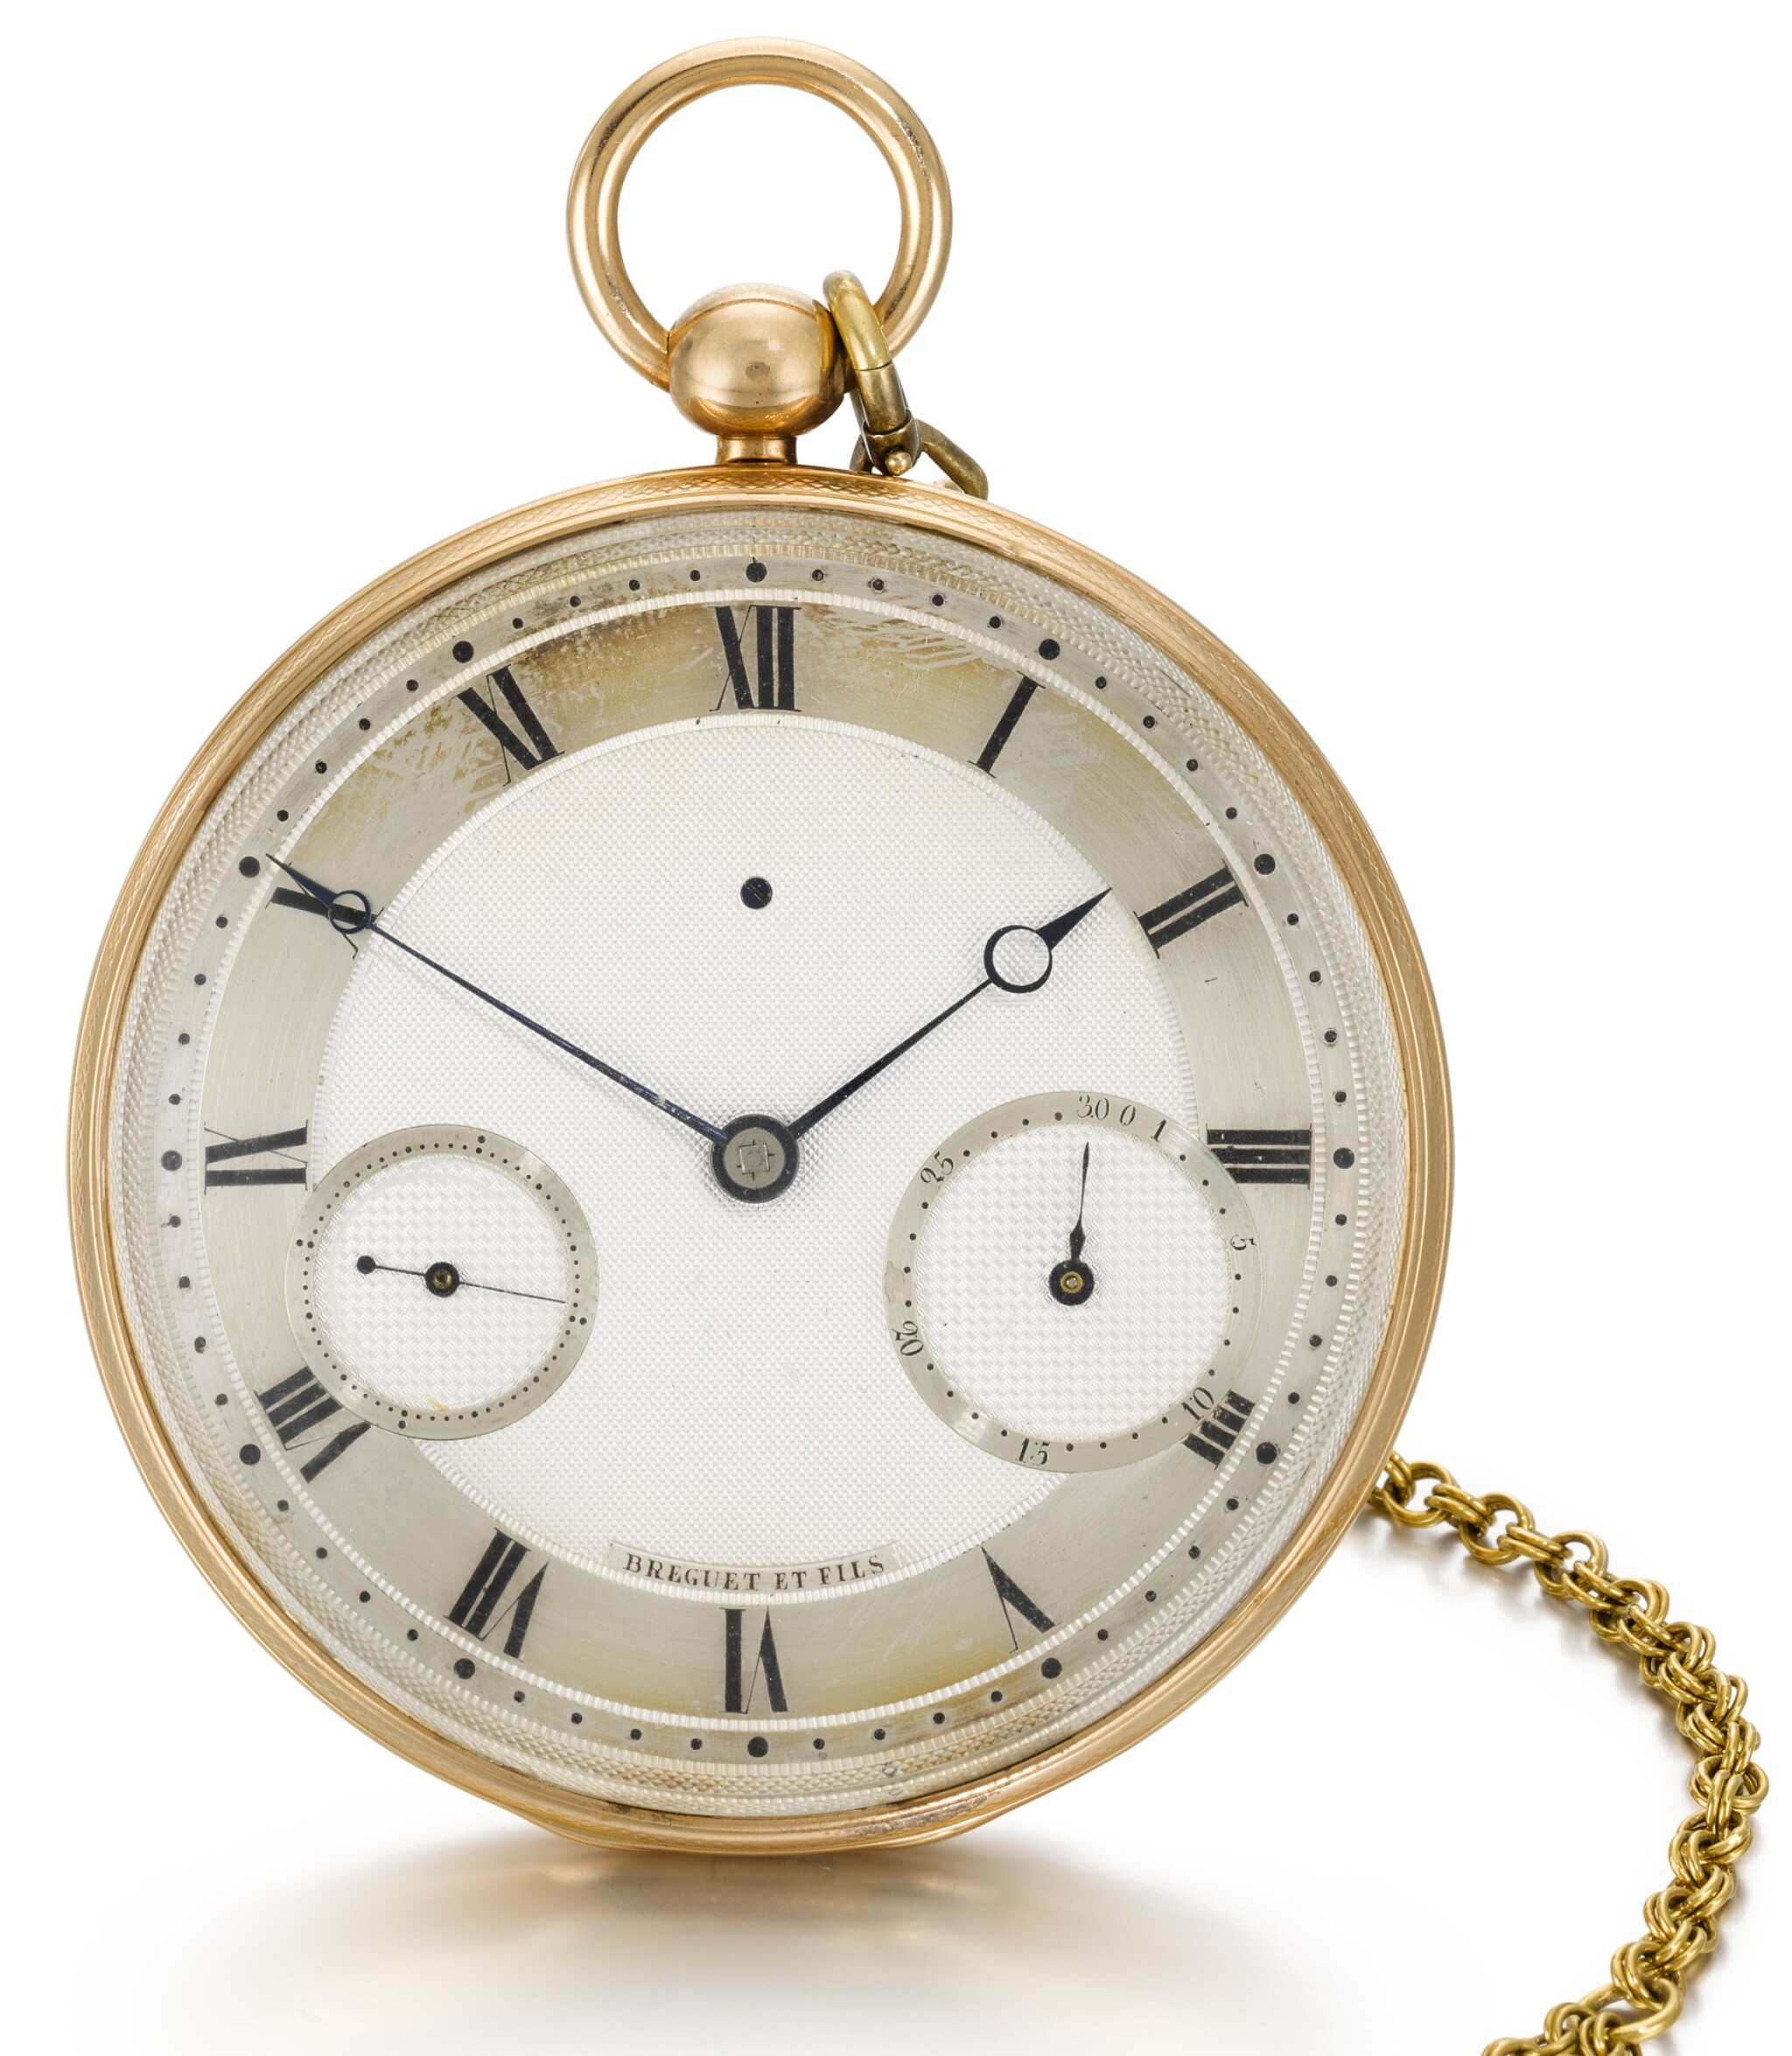 View full screen - View 1 of Lot 57. BREGUET ET FILS   [寶璣]  | A FINE AND UNUSUAL GOLD RUBY CYLINDER WATCH WITH DATE AND SHORT CHAIN  NO. 2348, 'MONTRE SIMPLE' SOLD TO SON ALTESSE ROYALE LE DUC DE CAMBRIDGE ON 10 APRIL 1818 FOR 1172 FRANCS   [罕有黃金懷錶備紅寶石工字輪擒縱機芯、日期及短錶鍊,編號2348,1818年4月10日以1,172法郎售予劍橋公爵殿下].